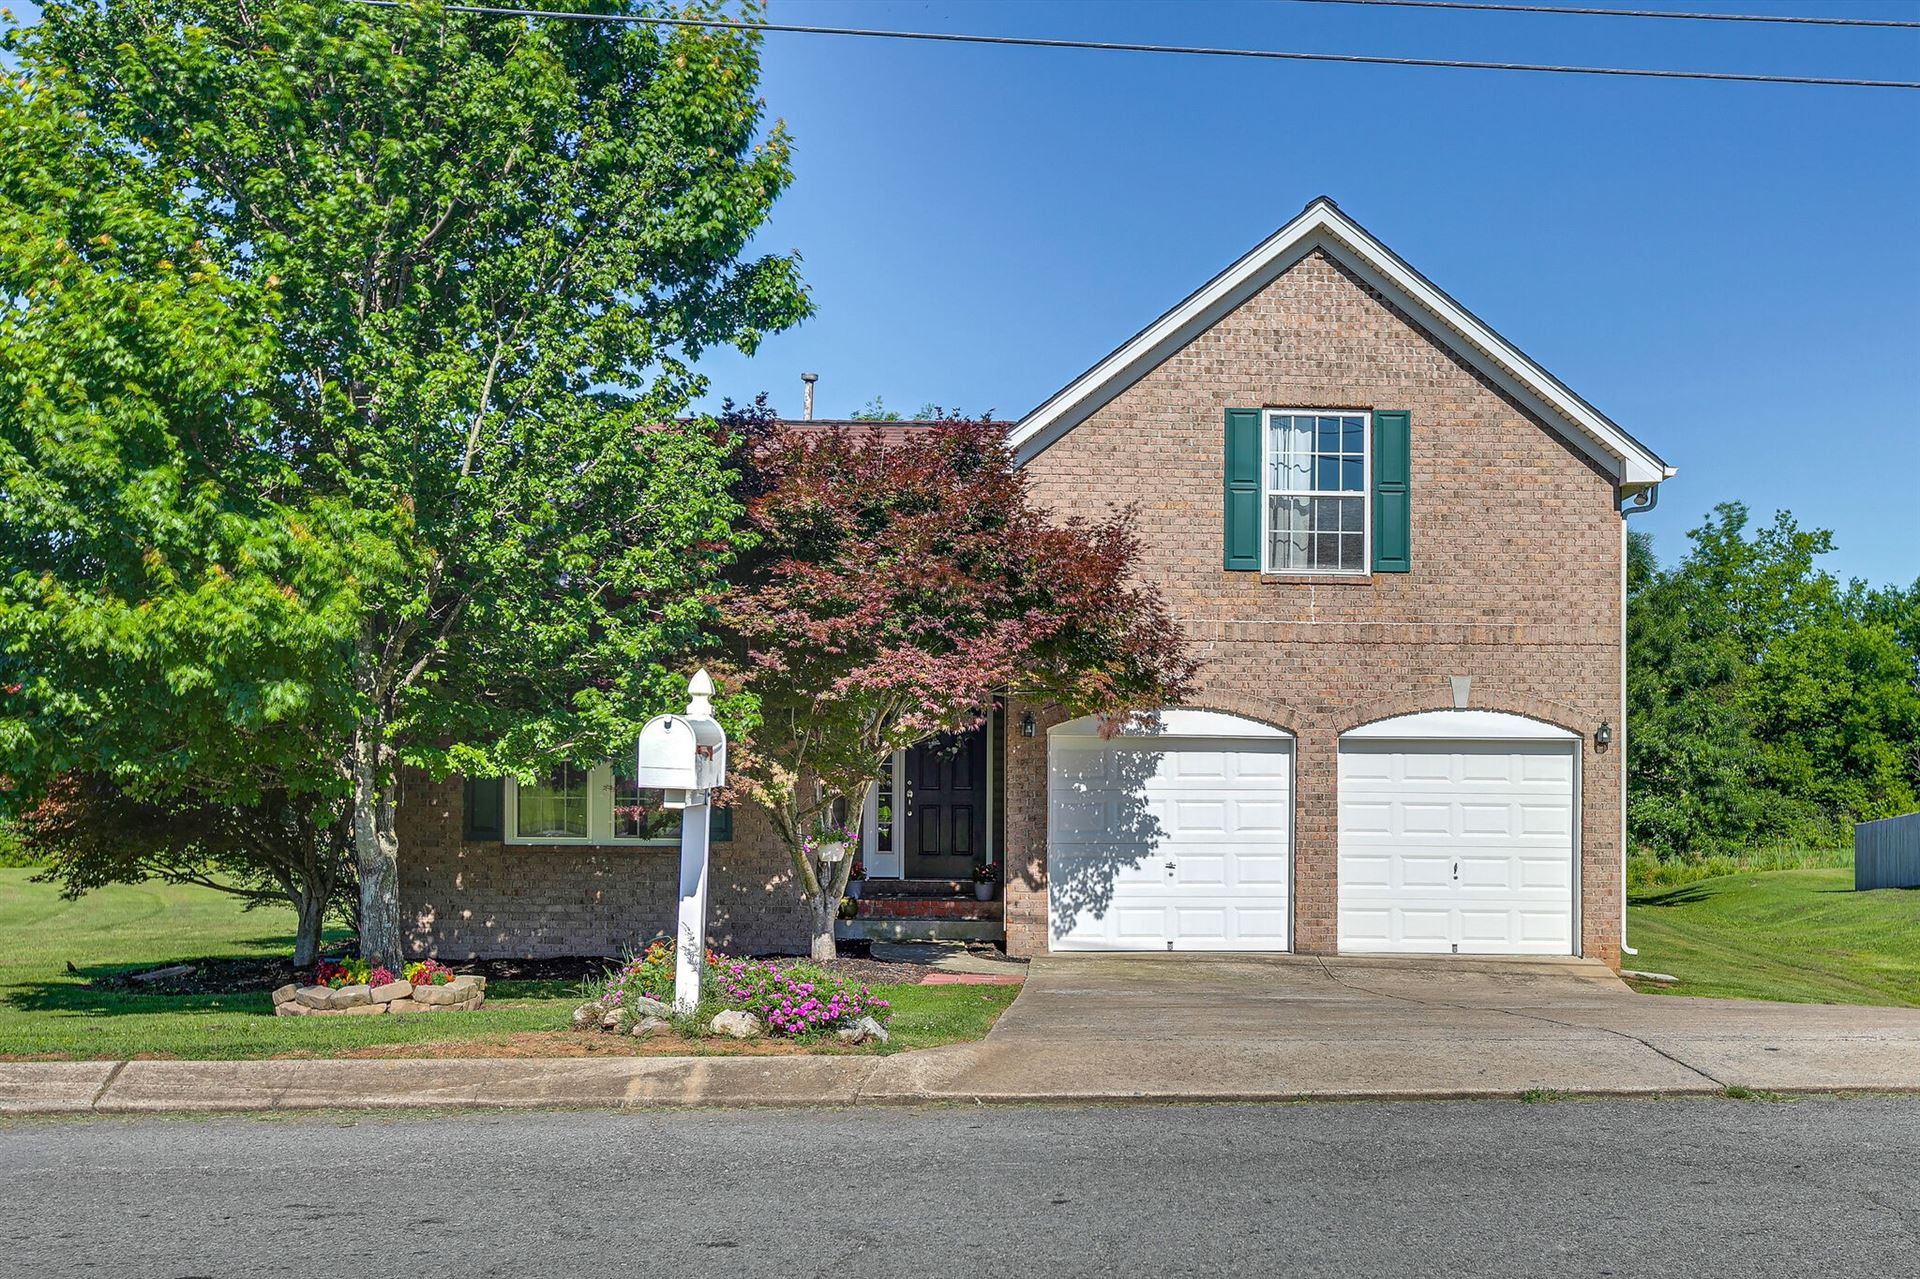 Photo of 2702 Paradise Dr, Spring Hill, TN 37174 (MLS # 2263364)